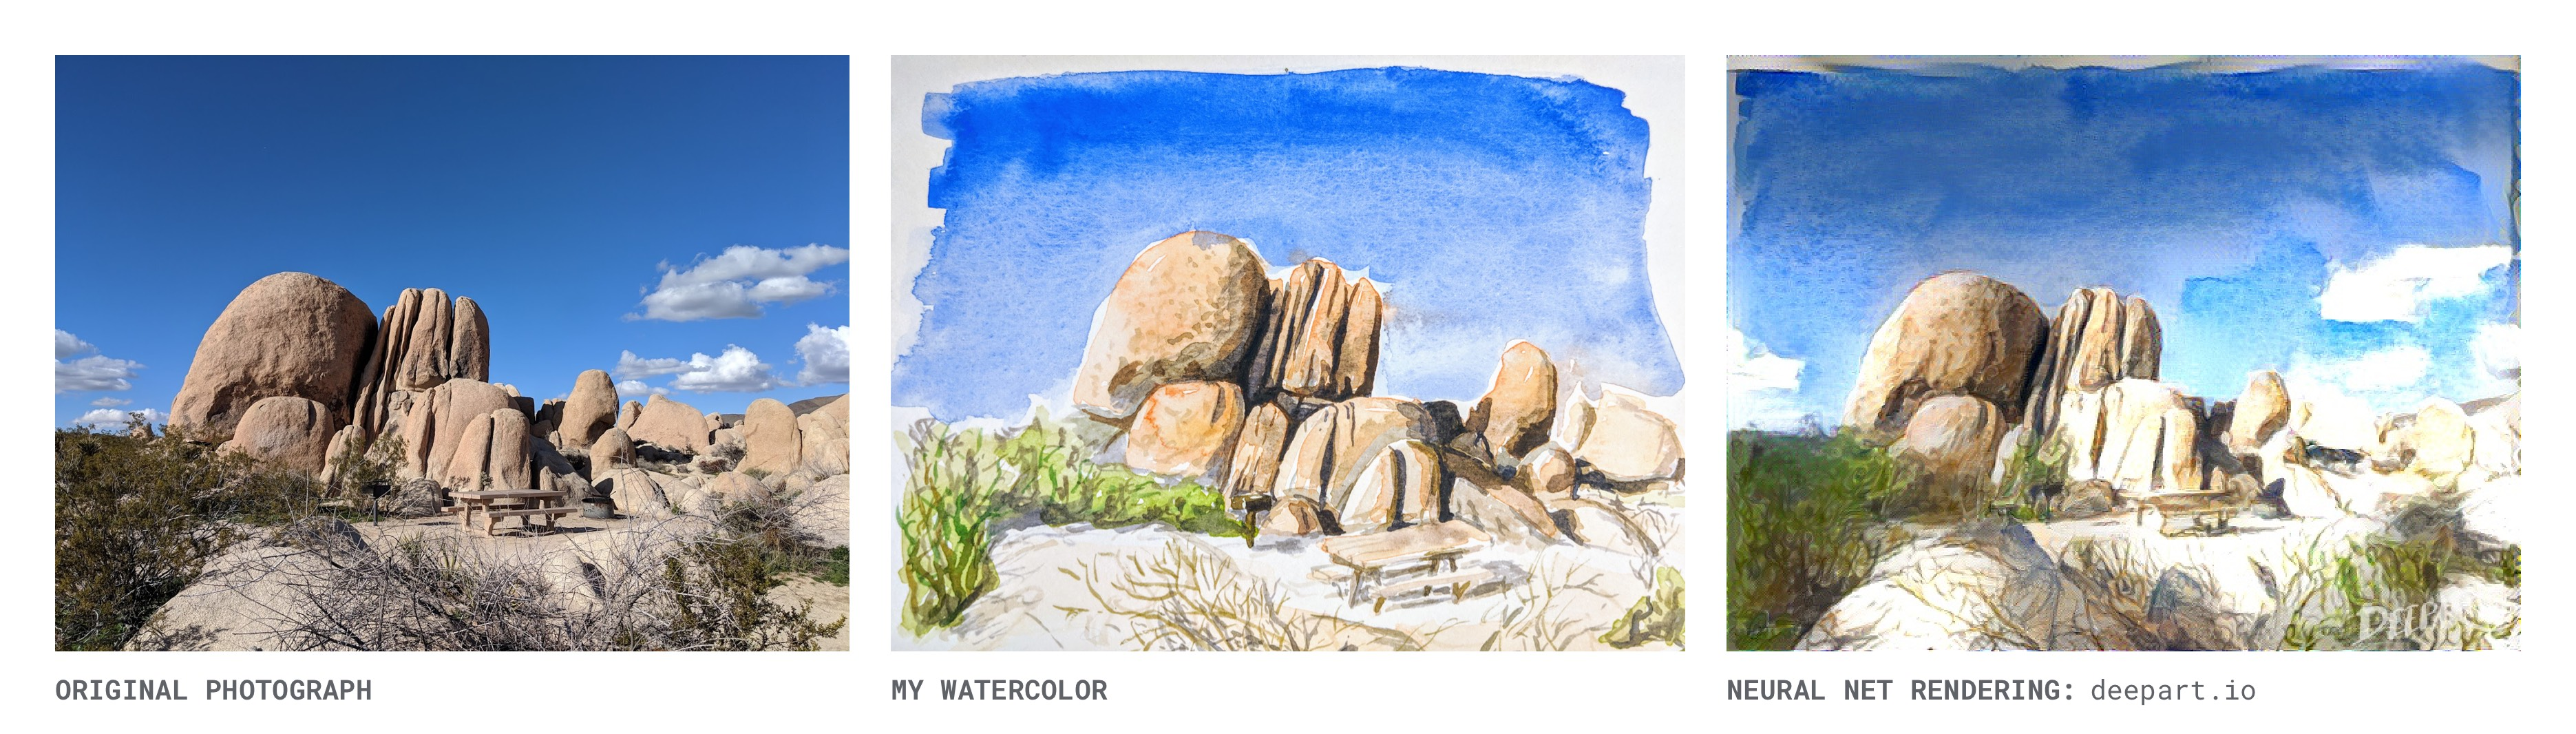 Joshua Tree: Original Photo, My Watercolor Painting & Deepart Rendering